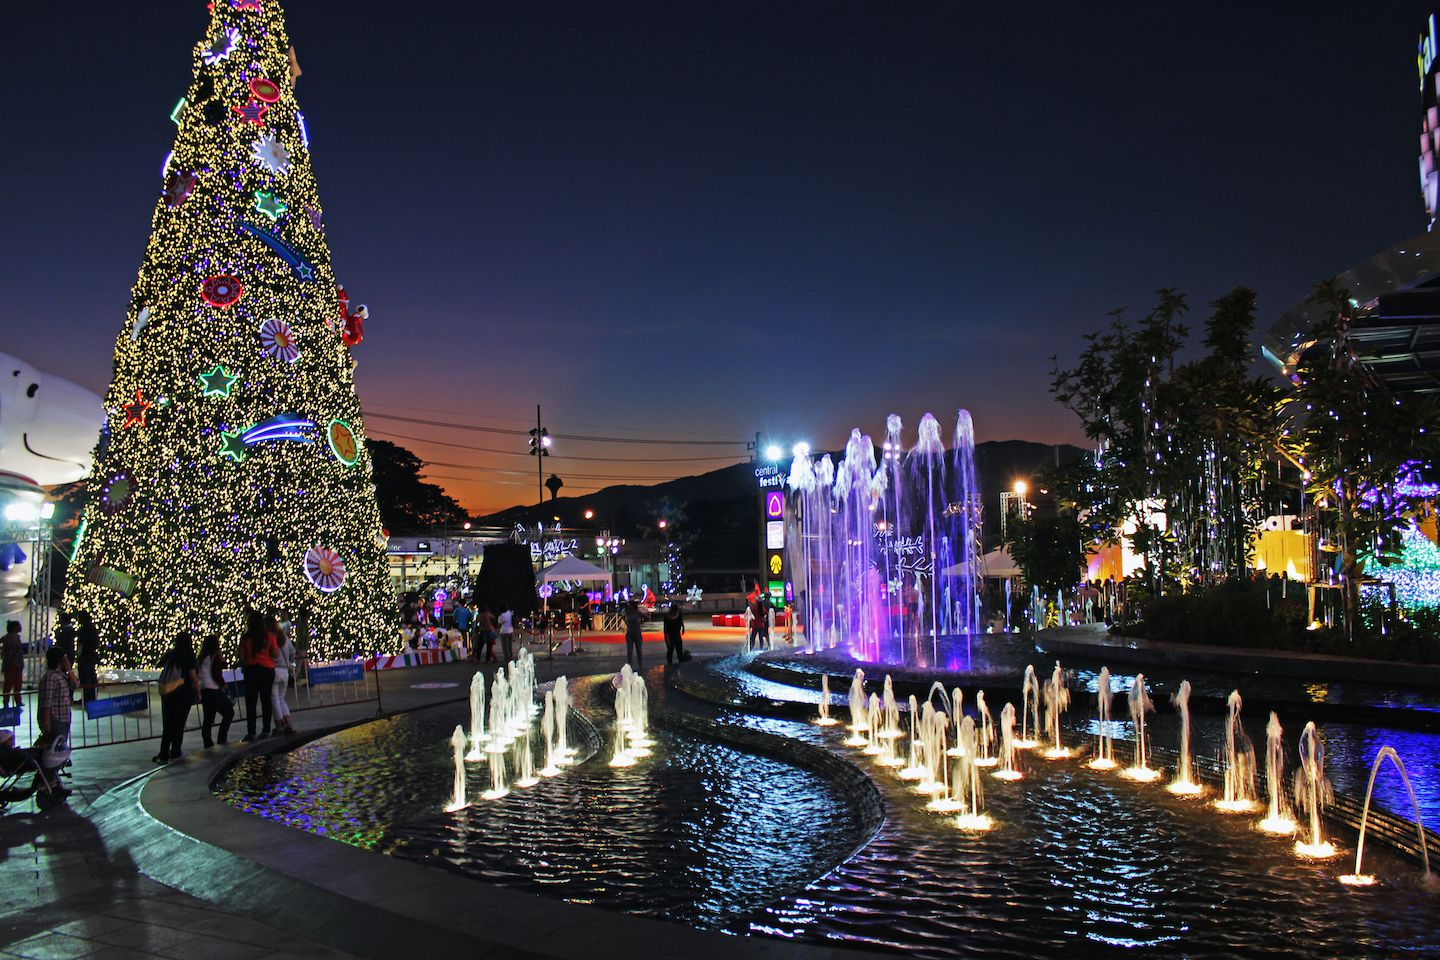 entrance-to-the-centralfestival-mall-in-chiang-mai.jpg